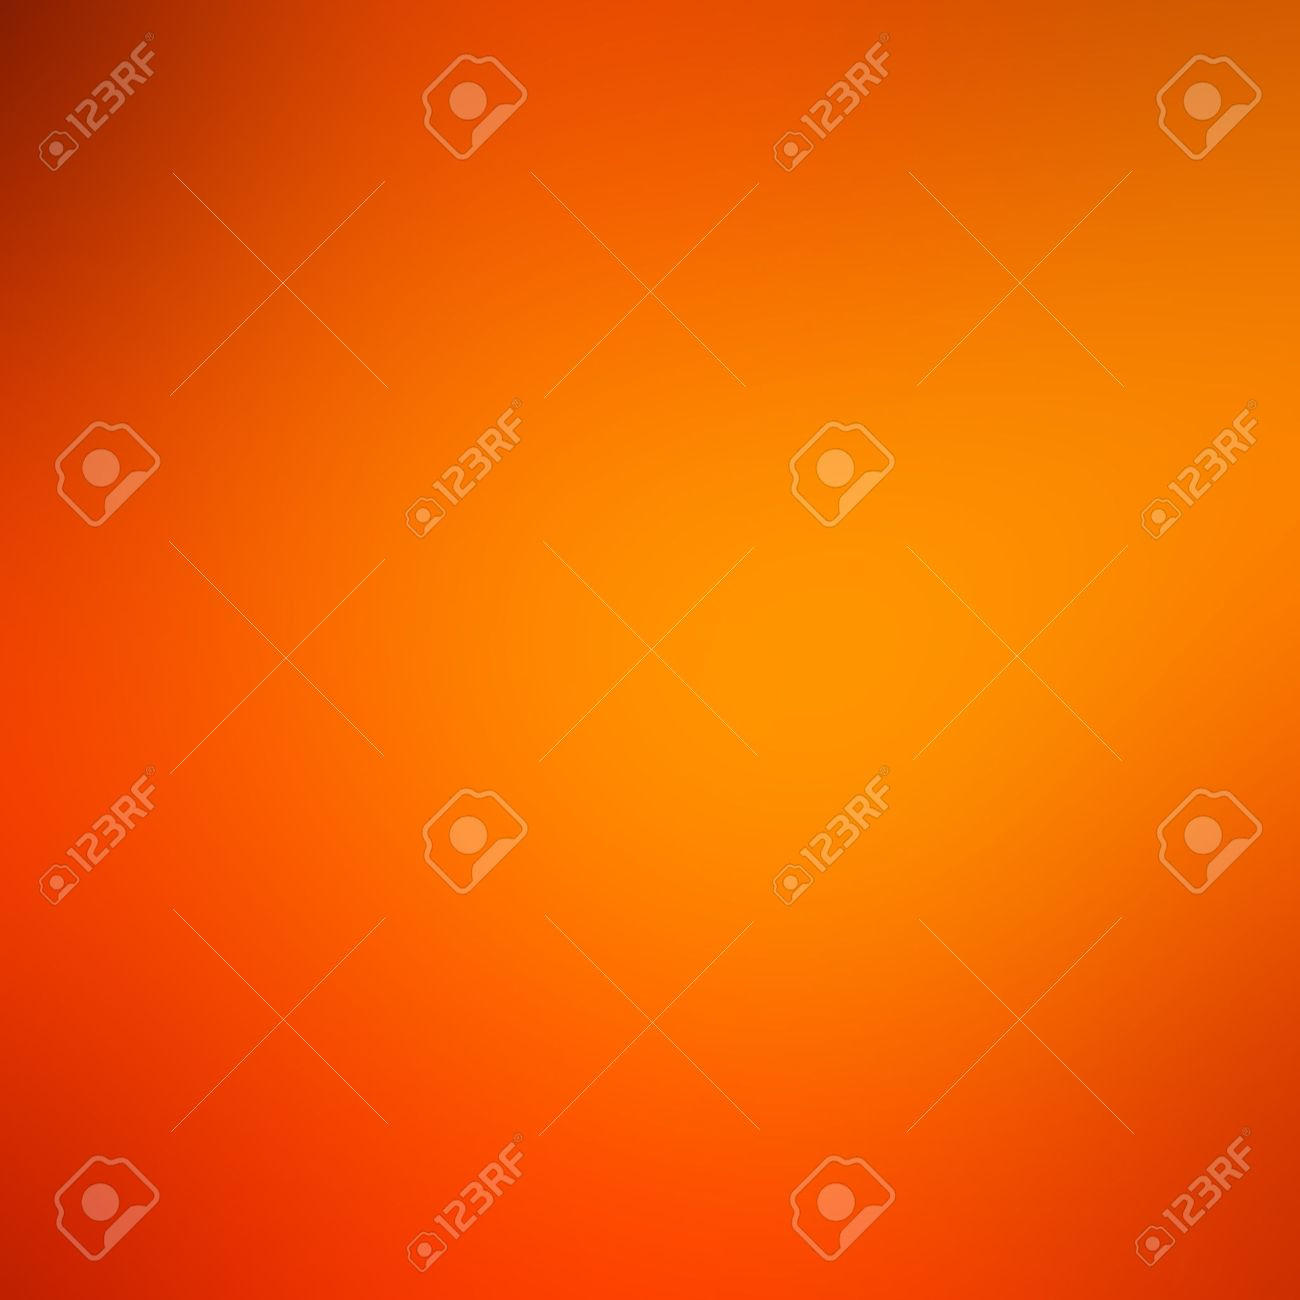 Background image header - Stock Photo Abstract Blurred Background Smooth Gradient Texture Color Shiny Bright Background Banner Header Or Sidebar Graphic Art Image Elegant Rich